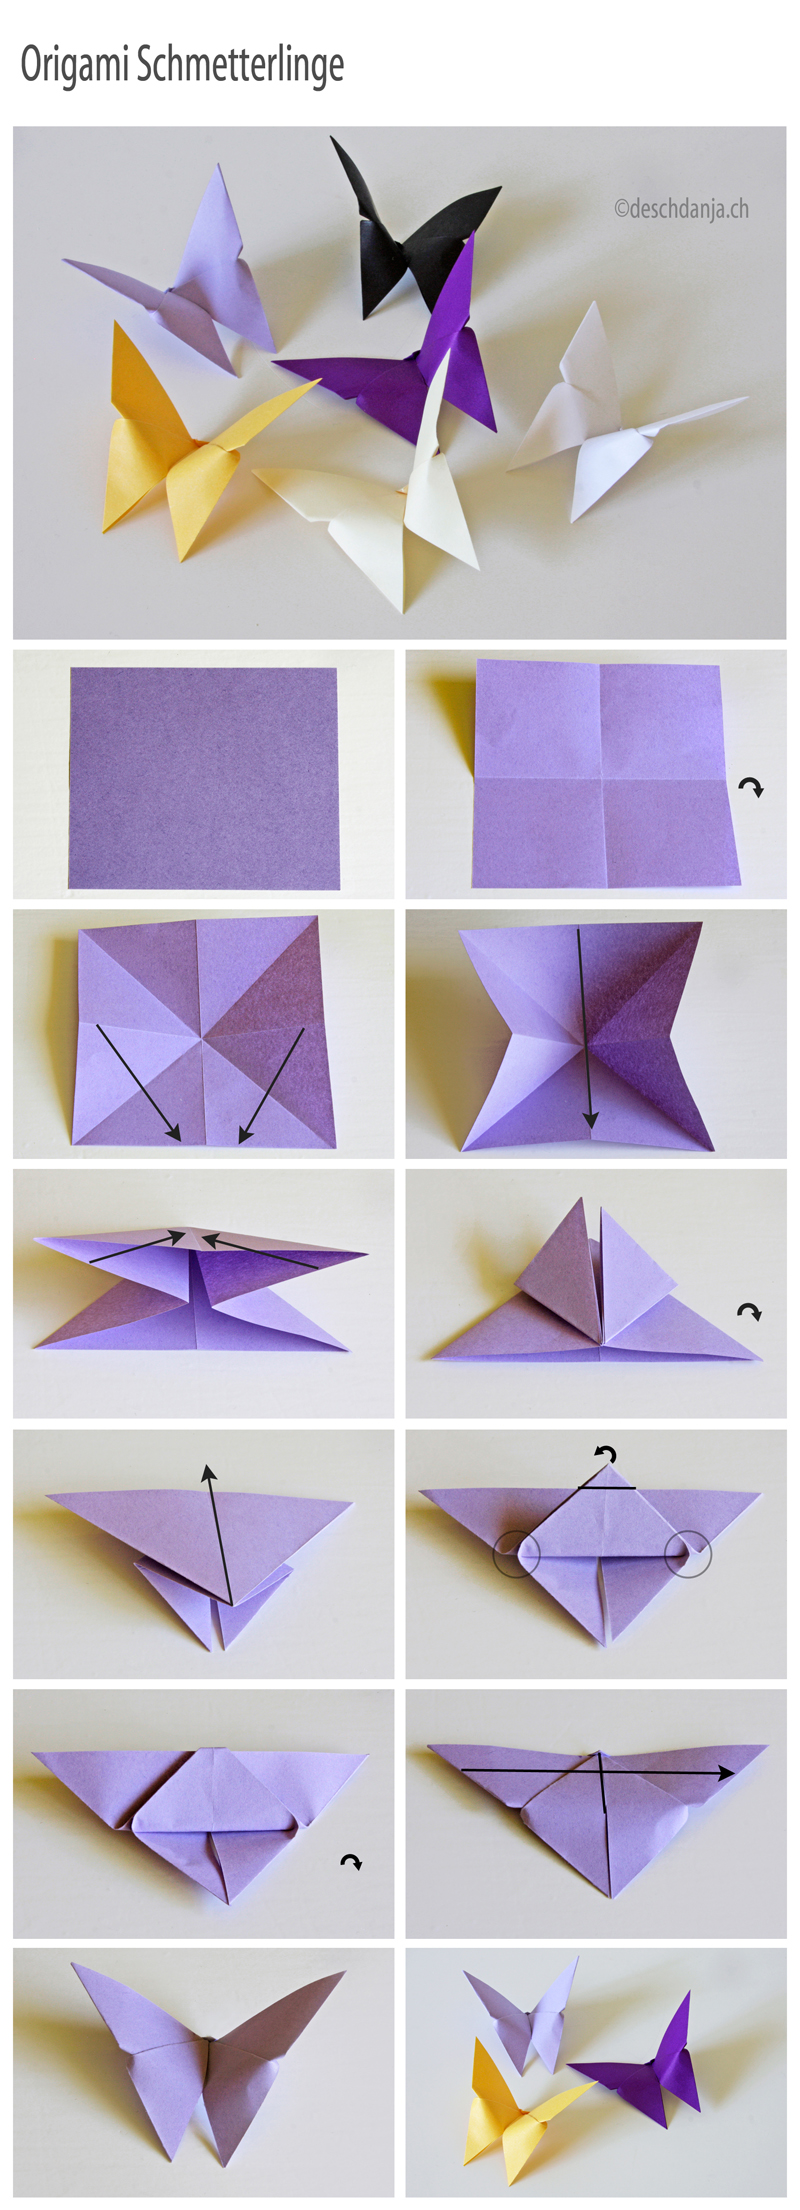 Easy Paper Craft Projects You Can Make with Kids – Cute DIY